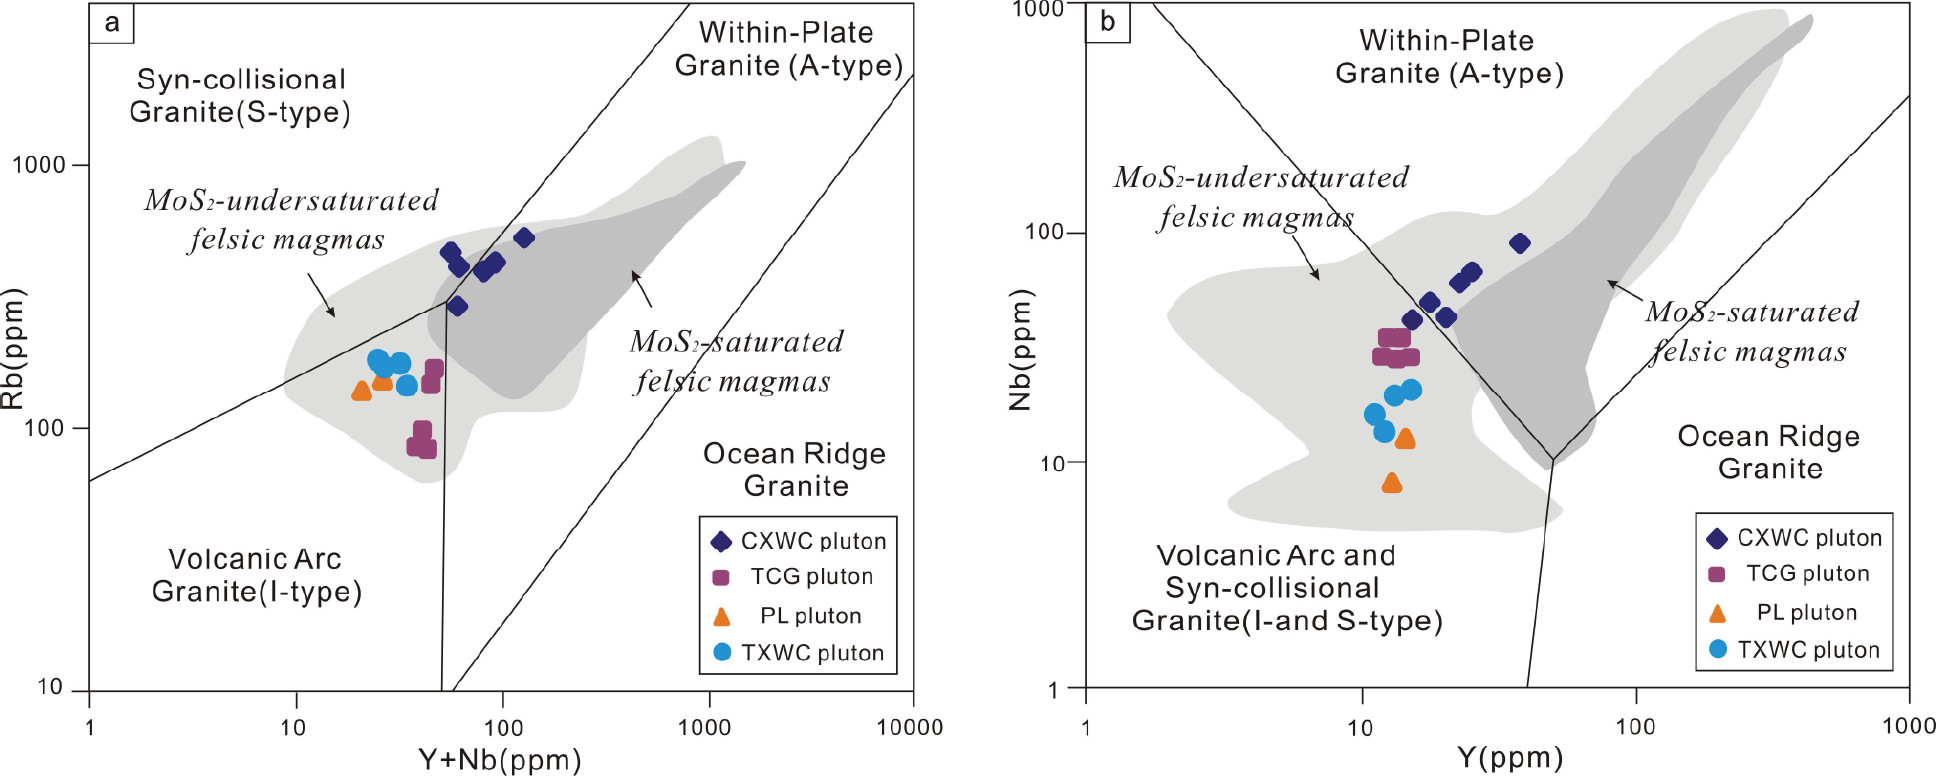 Titanite Major And Trace Element Compositions As Petrogenetic X Y Recorder Block Diagram View Largedownload Slide